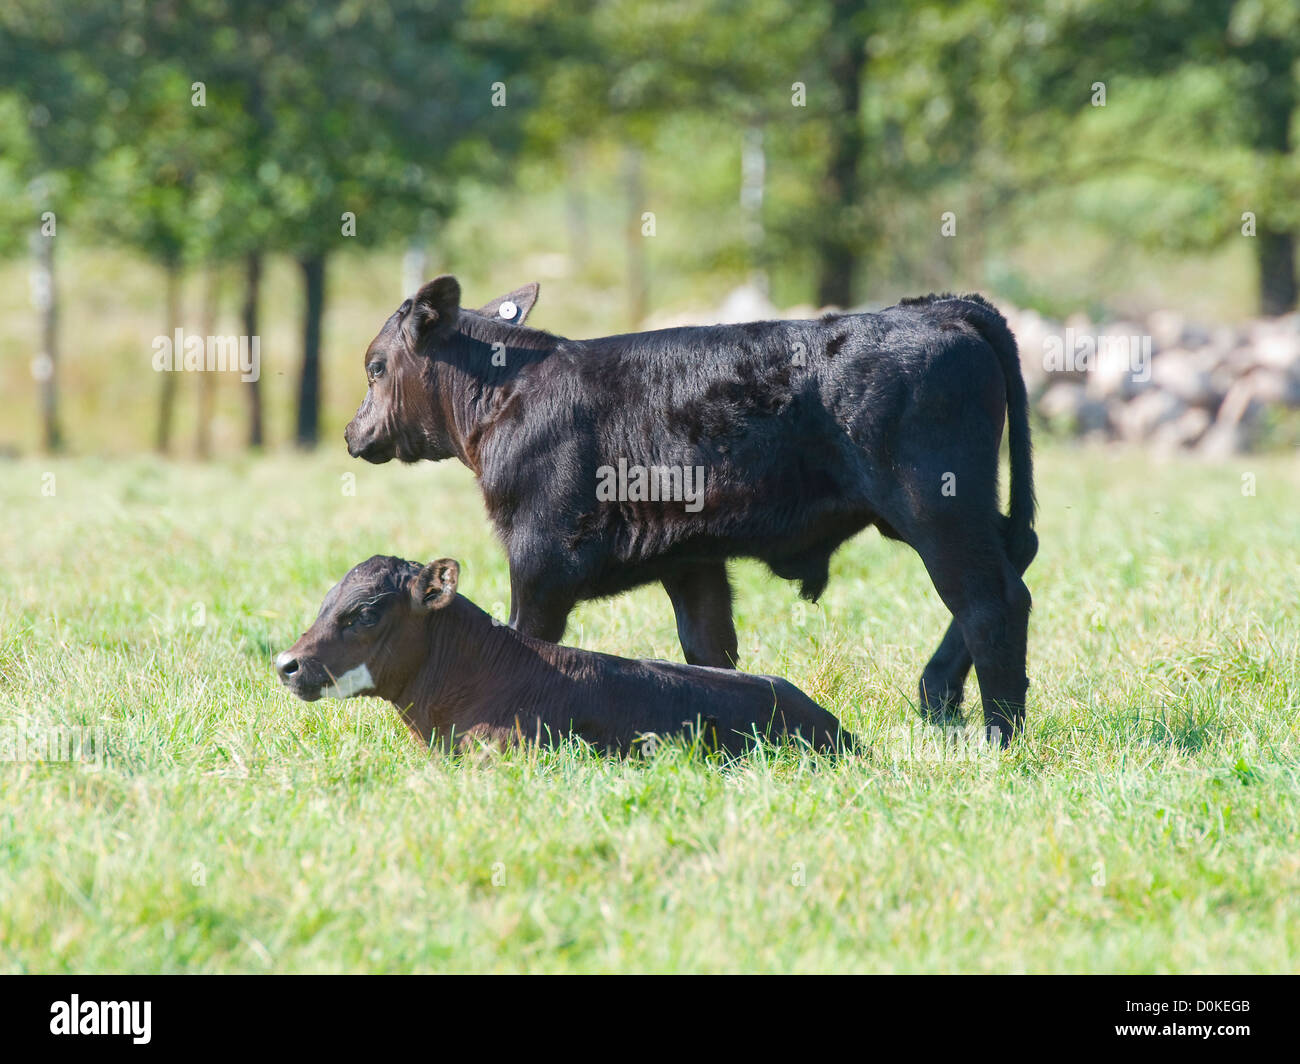 Angus Beef Cattle and Calves - Stock Image